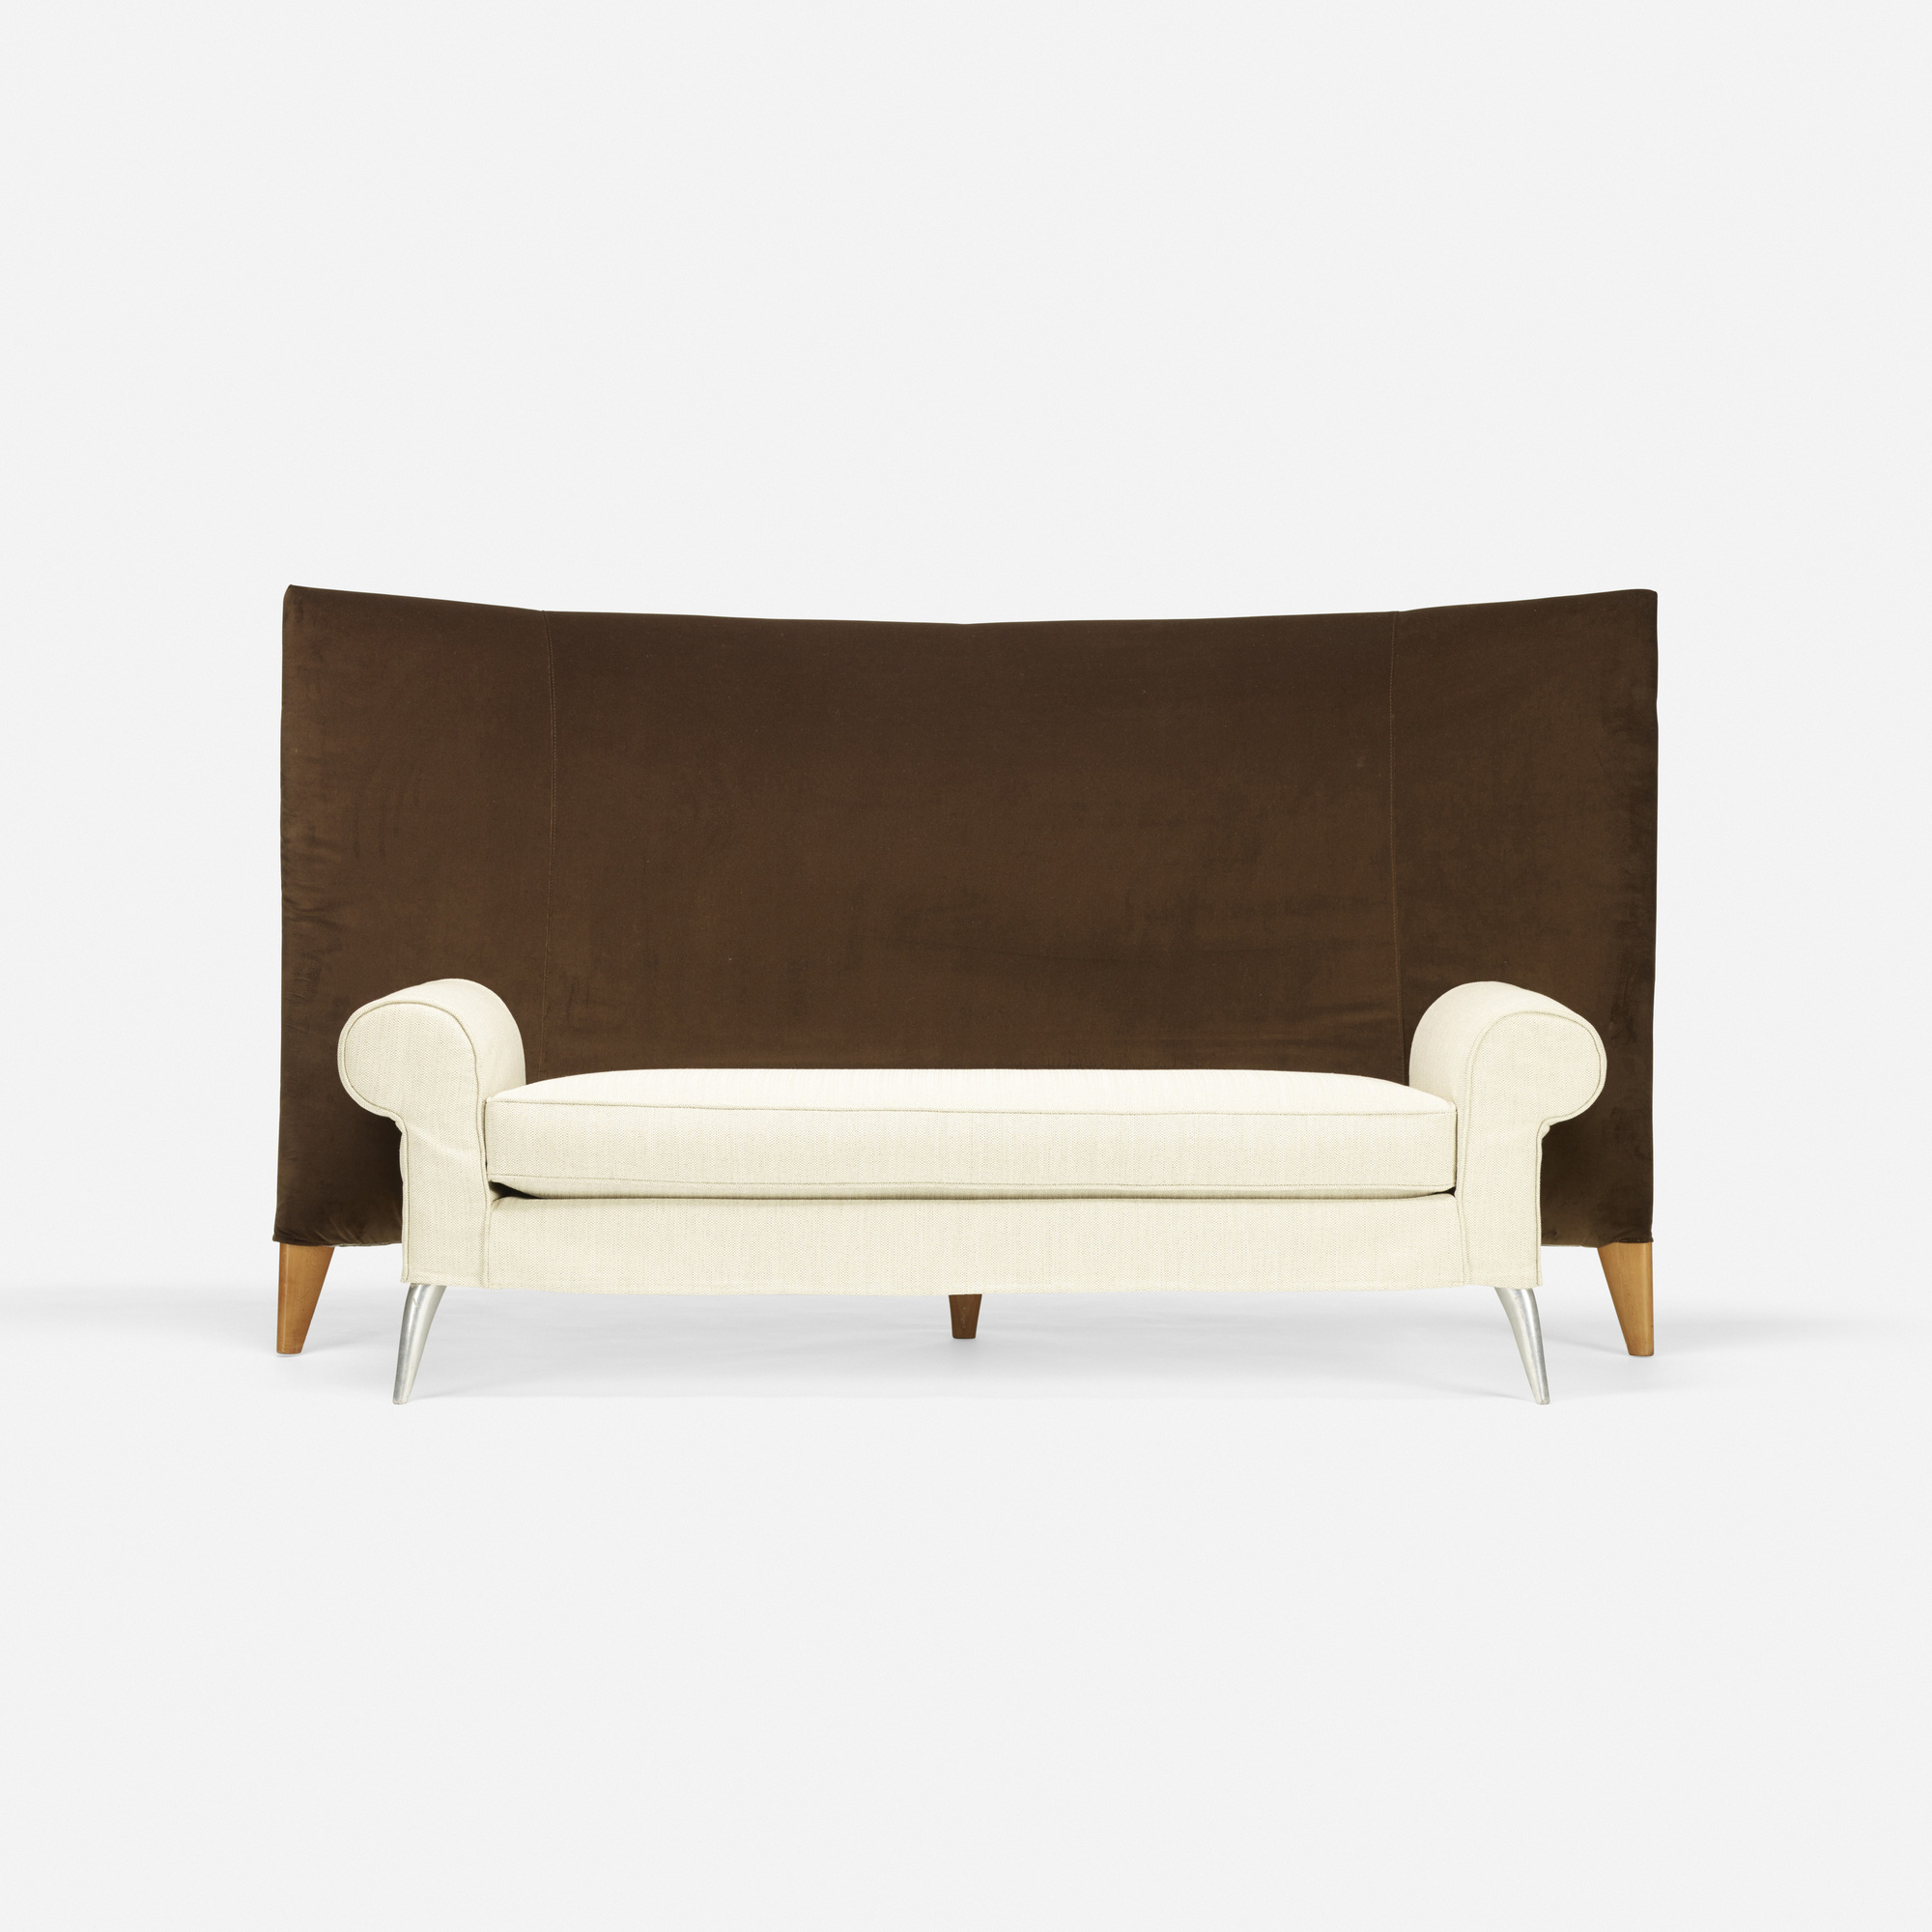 242: Philippe Starck / Royalton sofa (2 of 2)